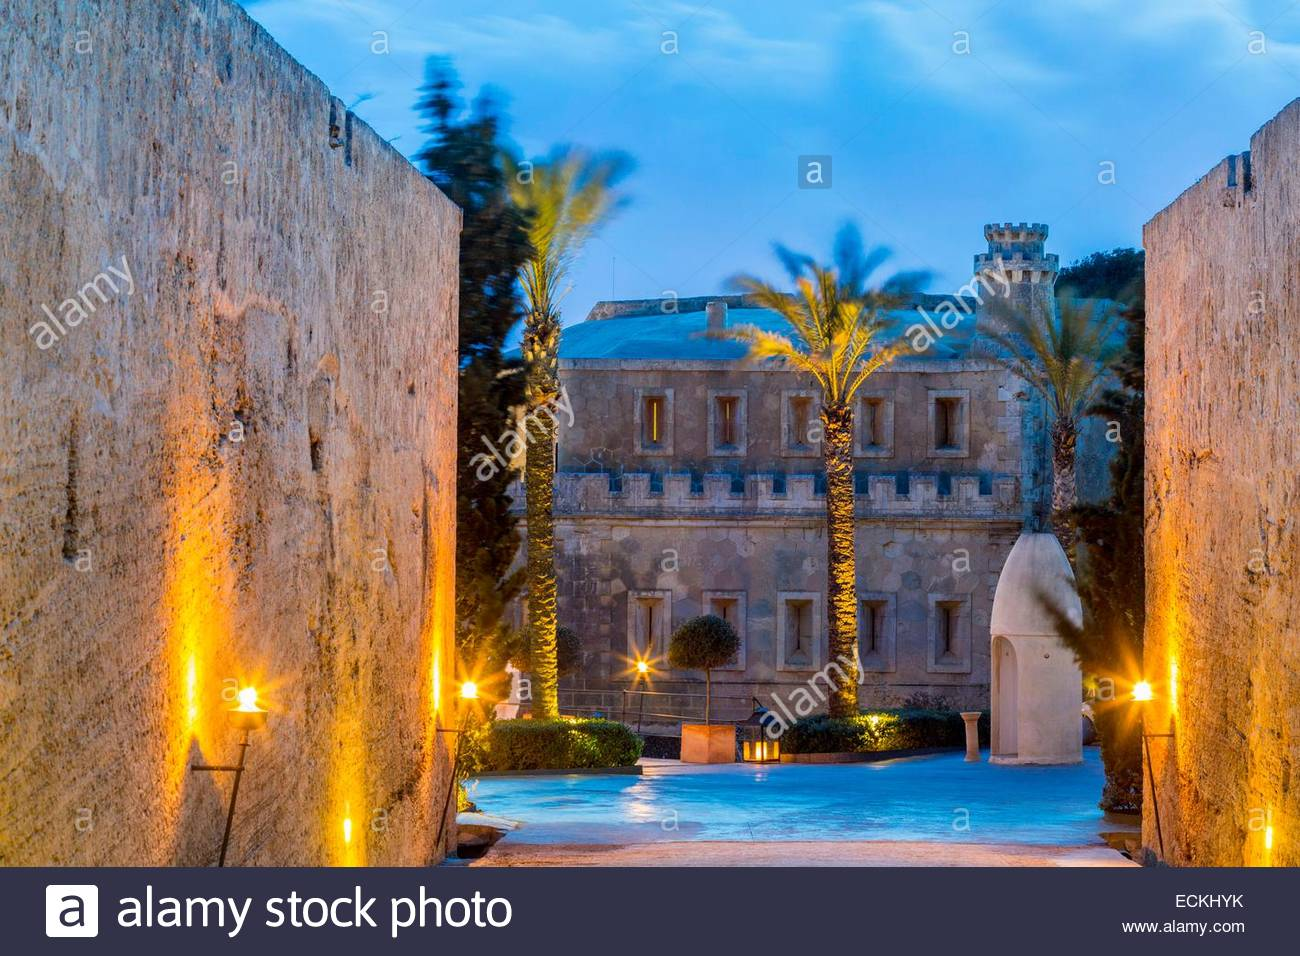 spain balearic islands majorca palma de mallorca bay hotel cap stock photo 76648535 alamy. Black Bedroom Furniture Sets. Home Design Ideas